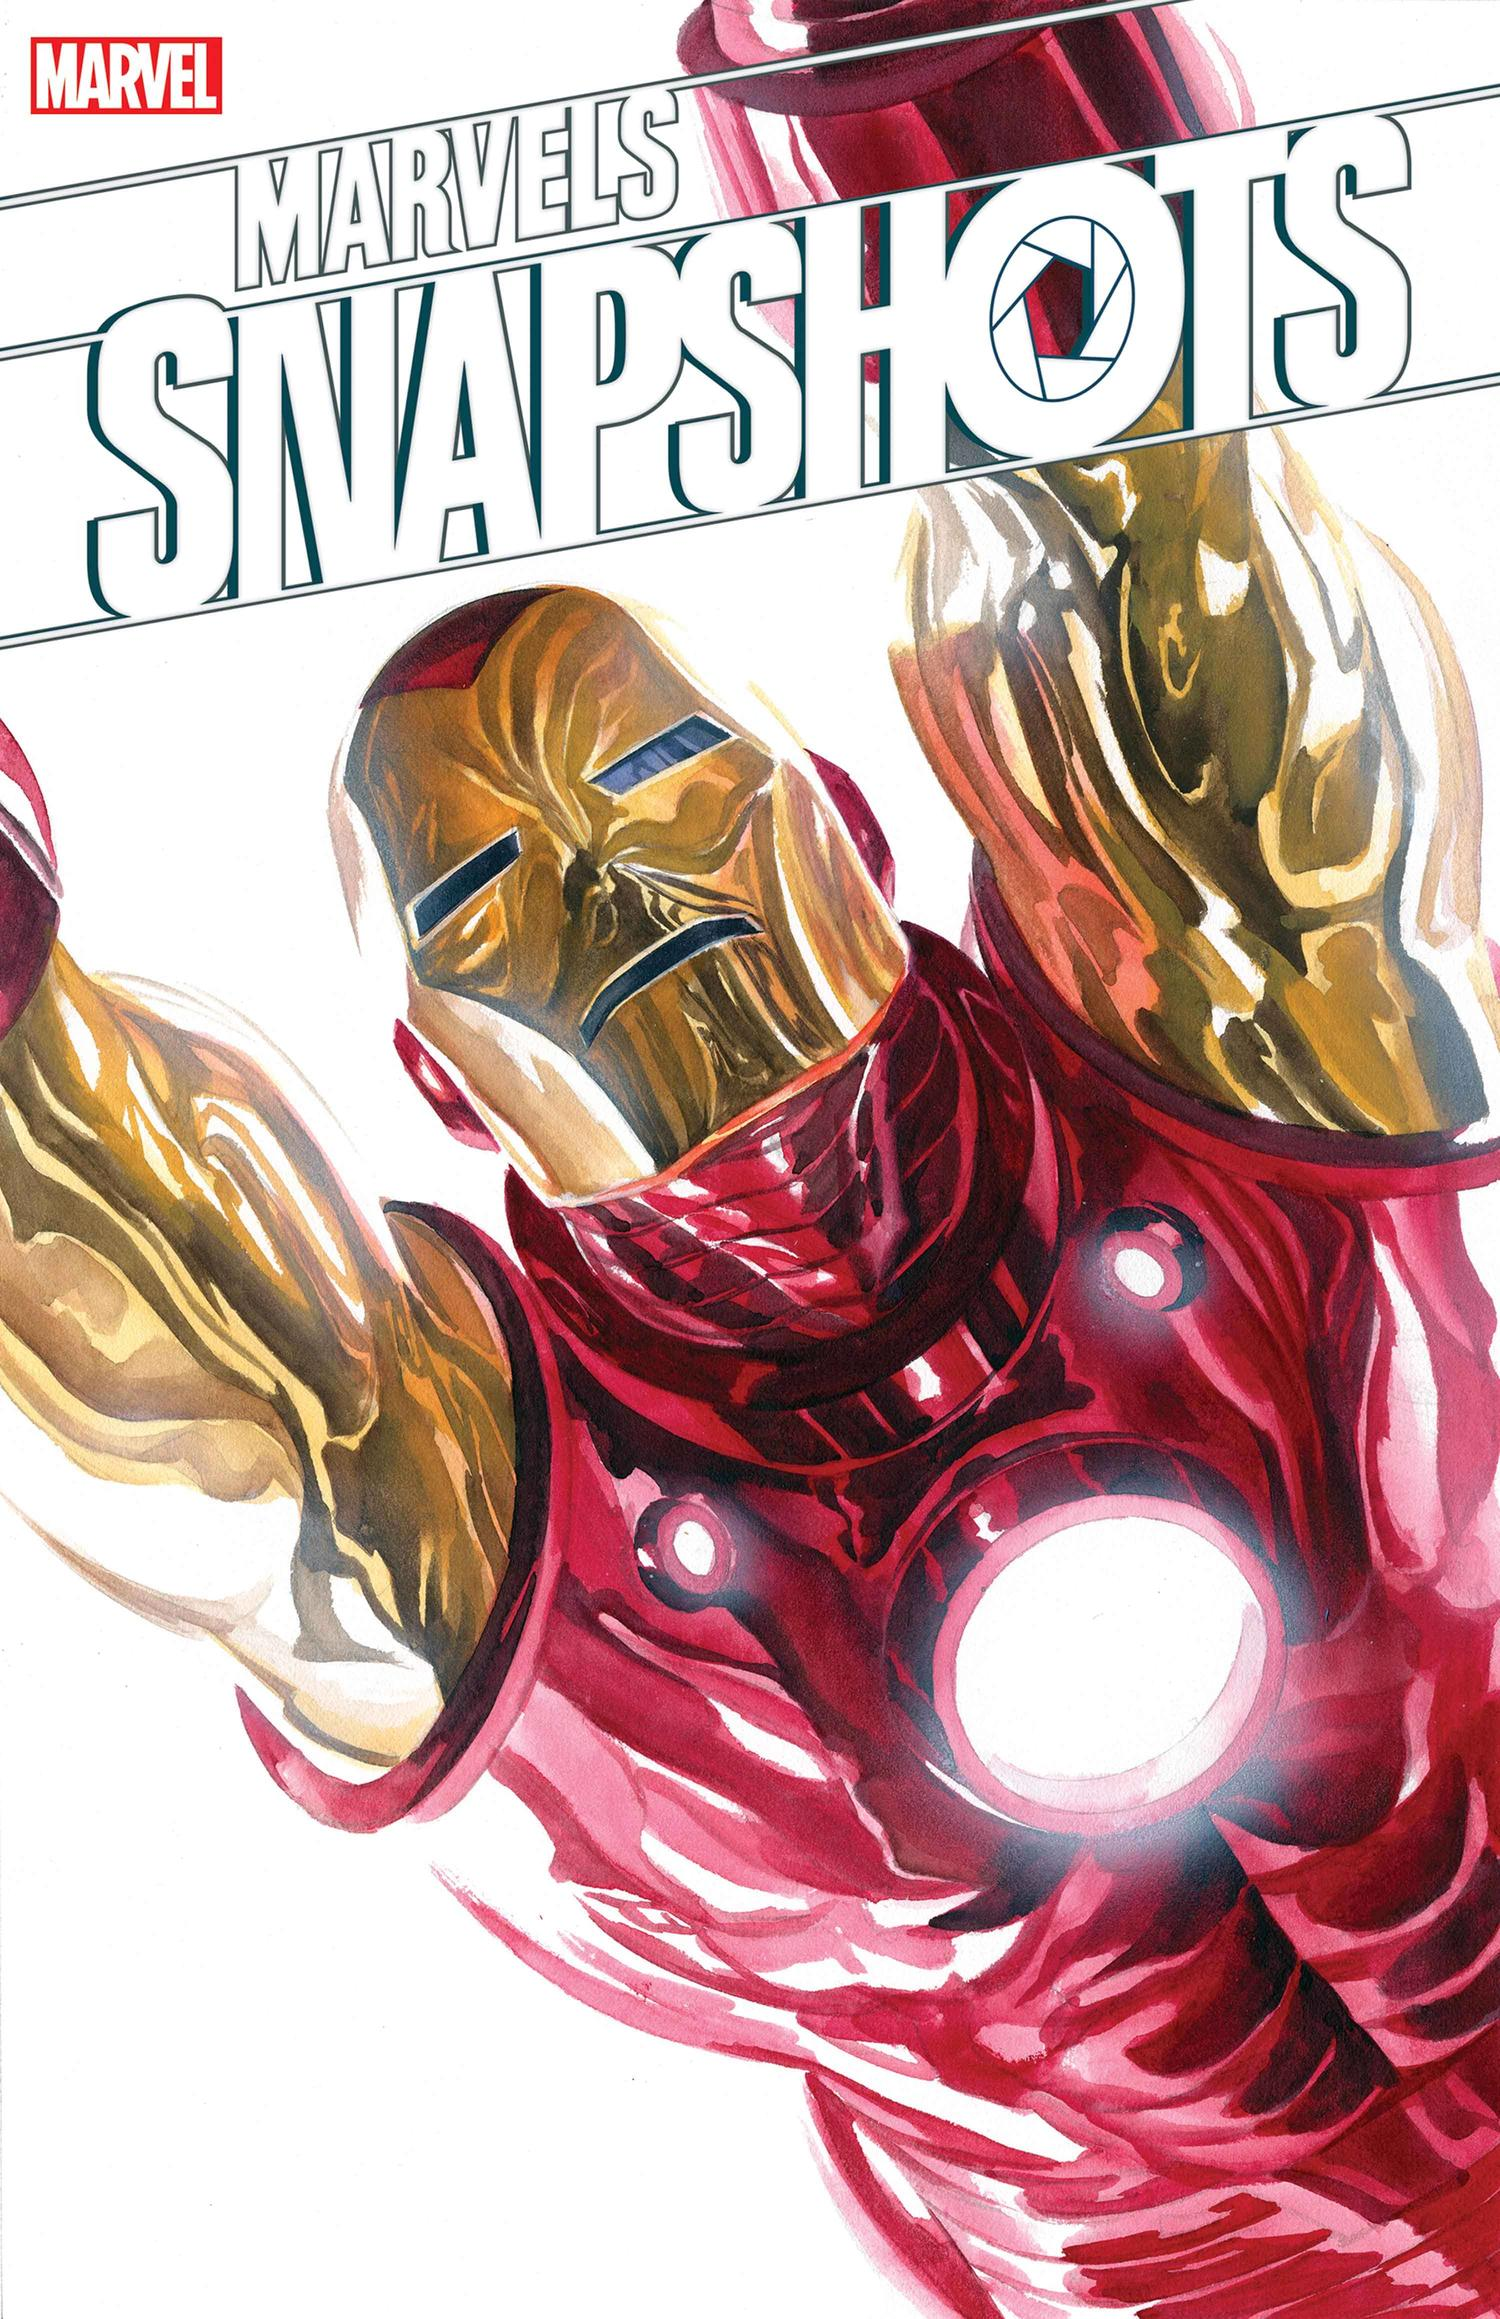 MARVELS SNAPSHOTS: AVENGERS cover by Alex Ross